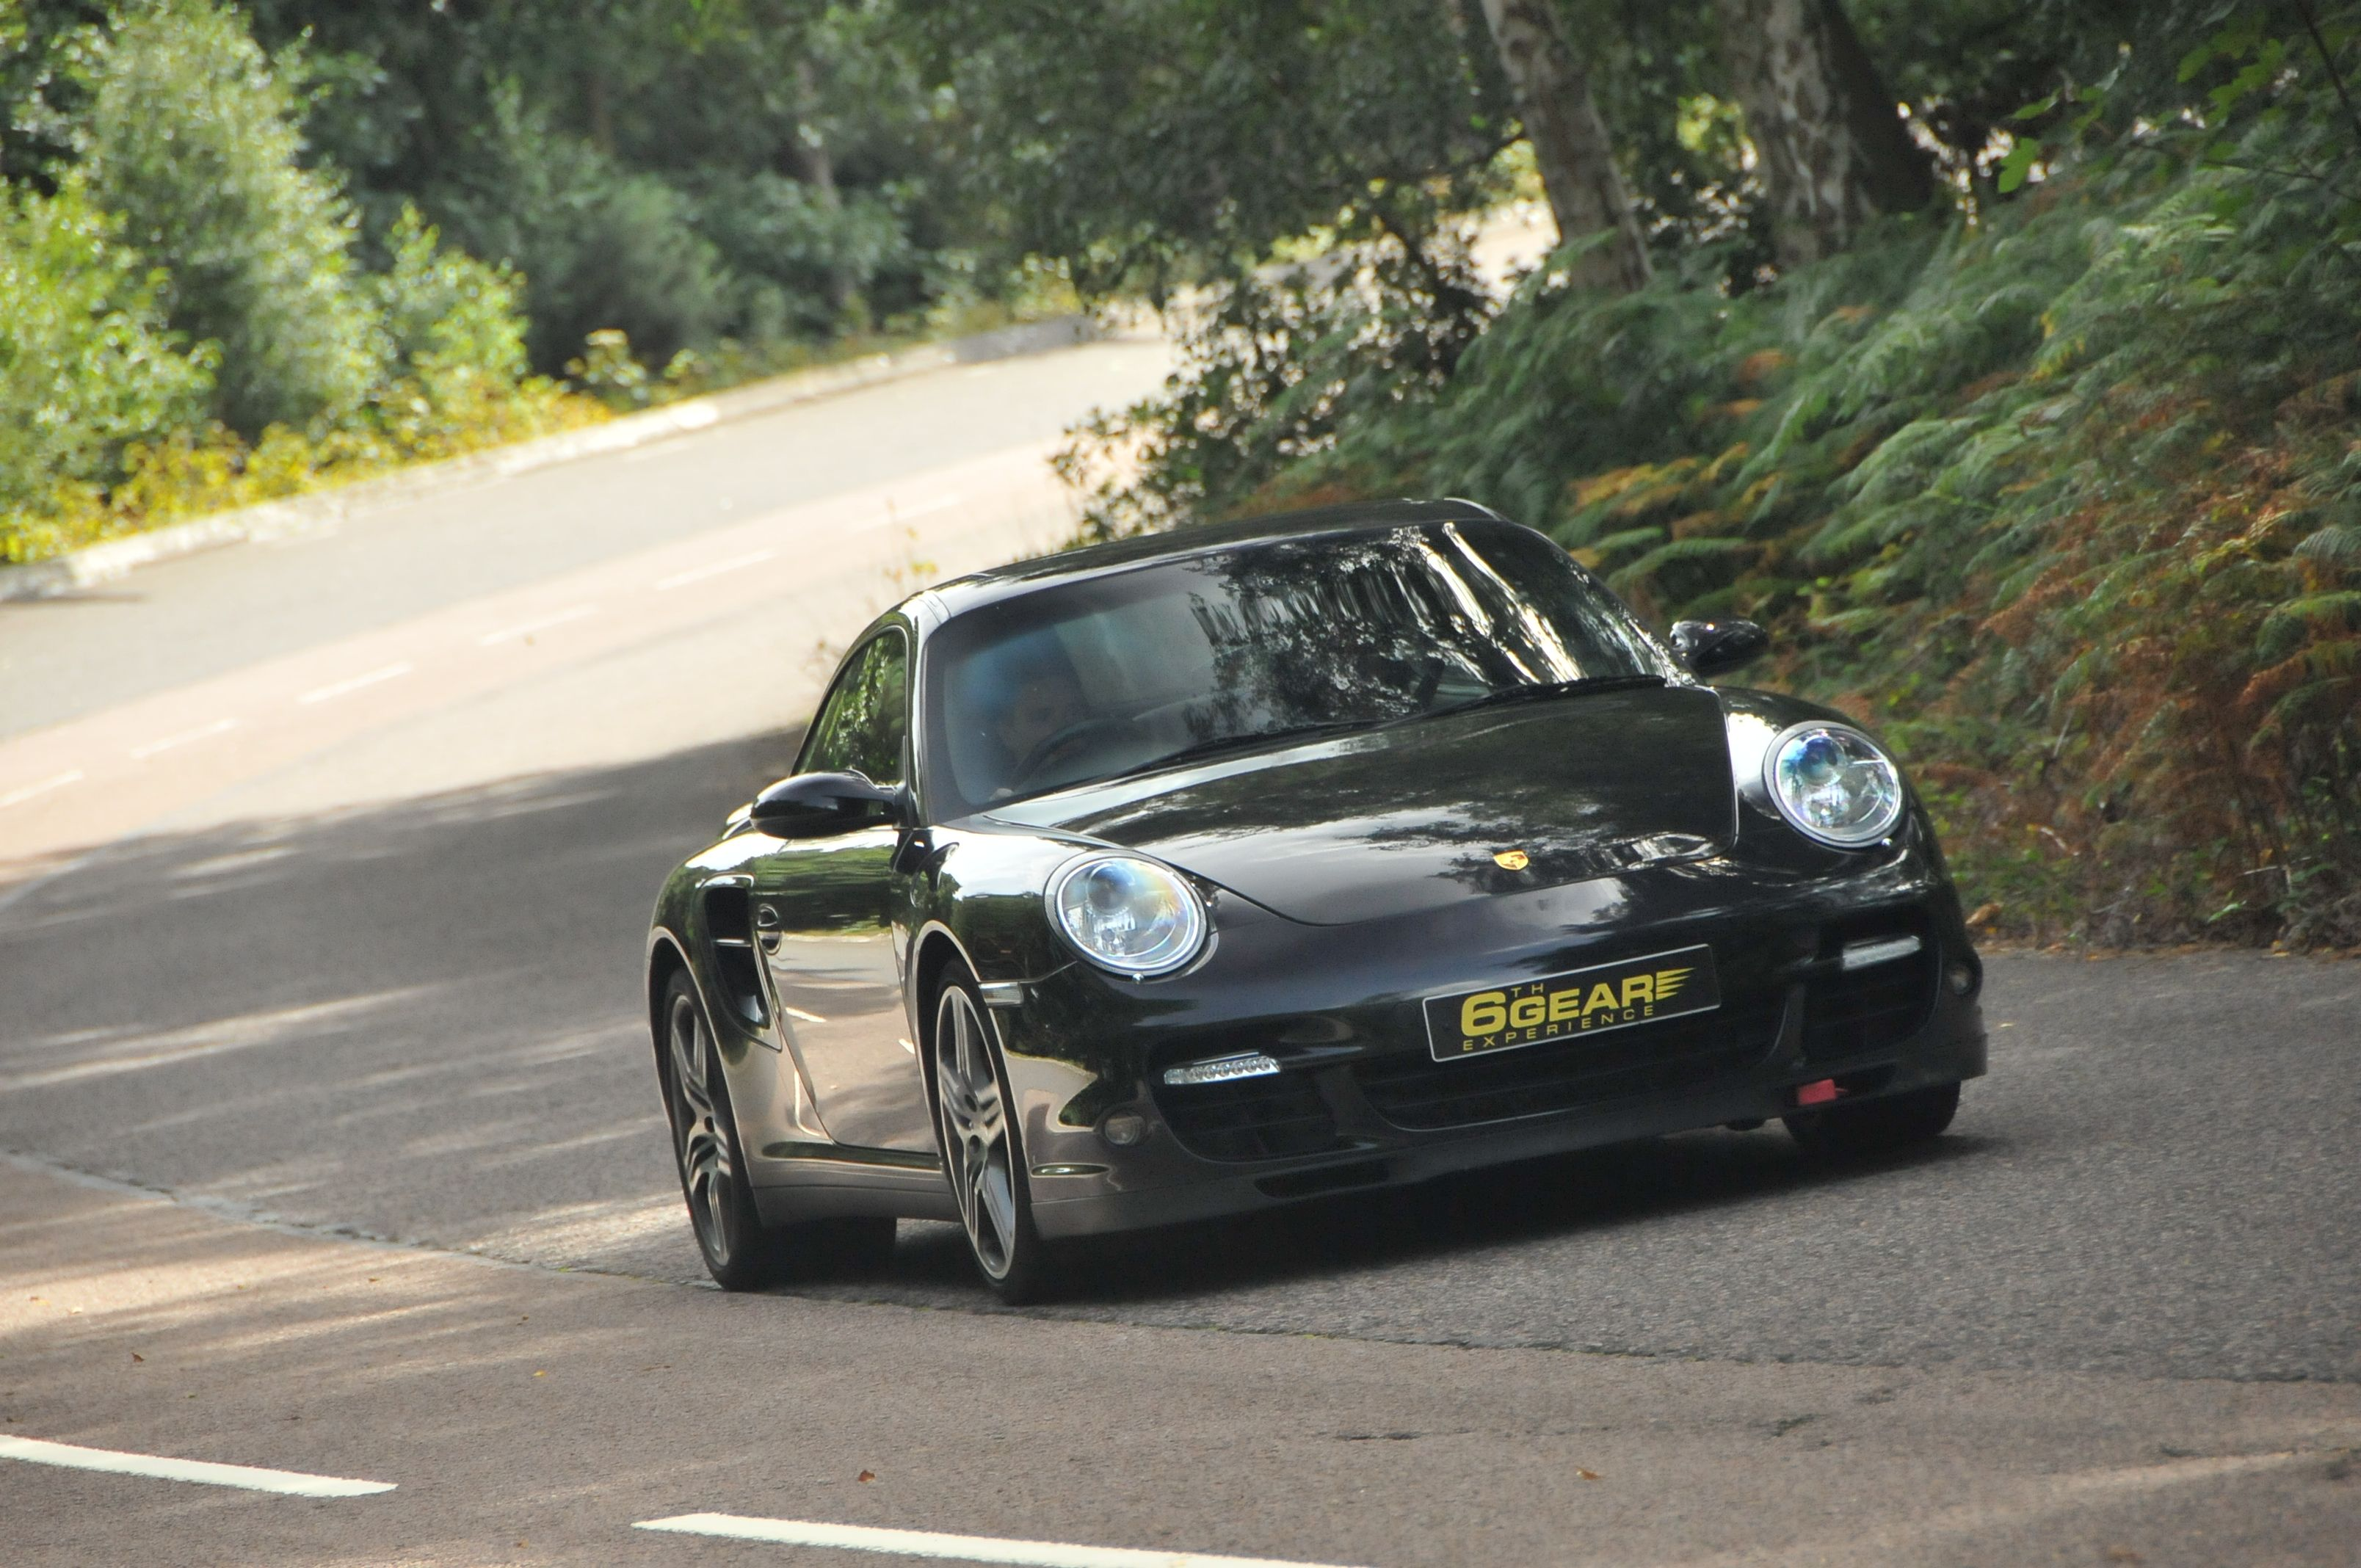 Junior Porsche Driving Experience With Supercar Hot Lap